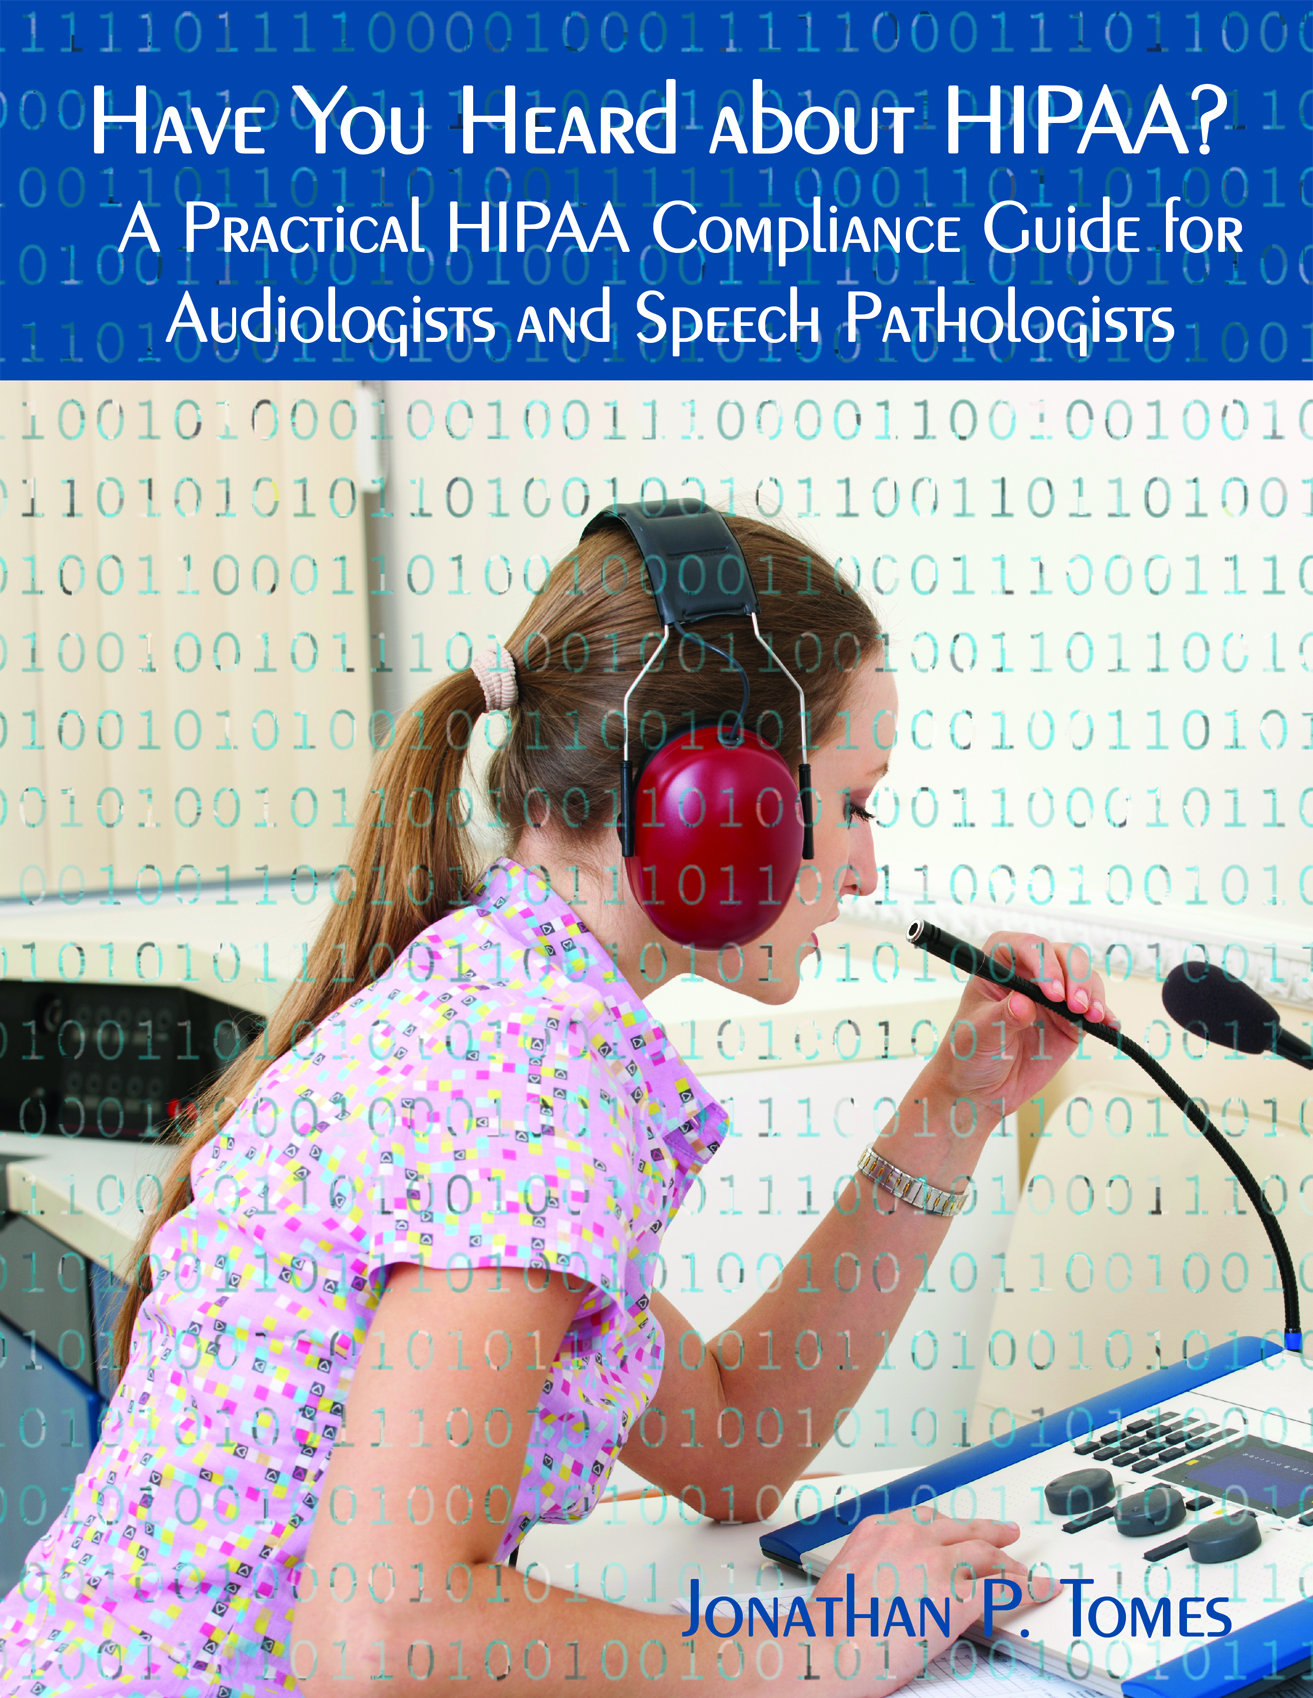 Have You Heard about HIPAA?  A Practical HIPAA Compliance Guide for Audiologists and Speech Pathologists